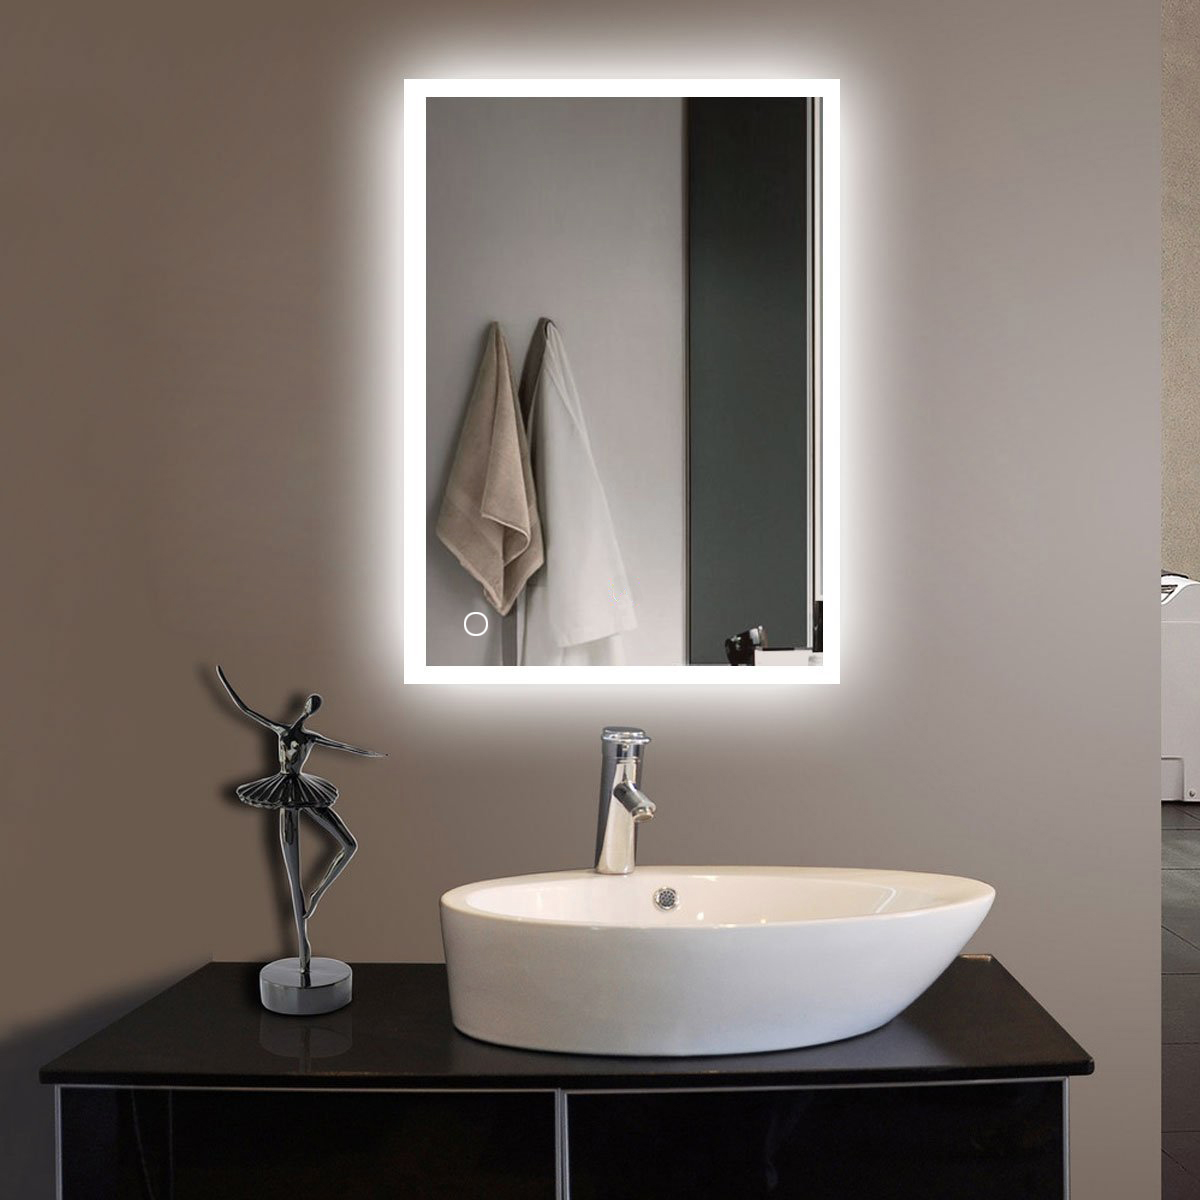 Ktaxon LED Lighted Rectangle Bathroom Mirror, Modern Wall Mirror with Lights,Wall Mounted Makeup Vanity Mirror by Interfave